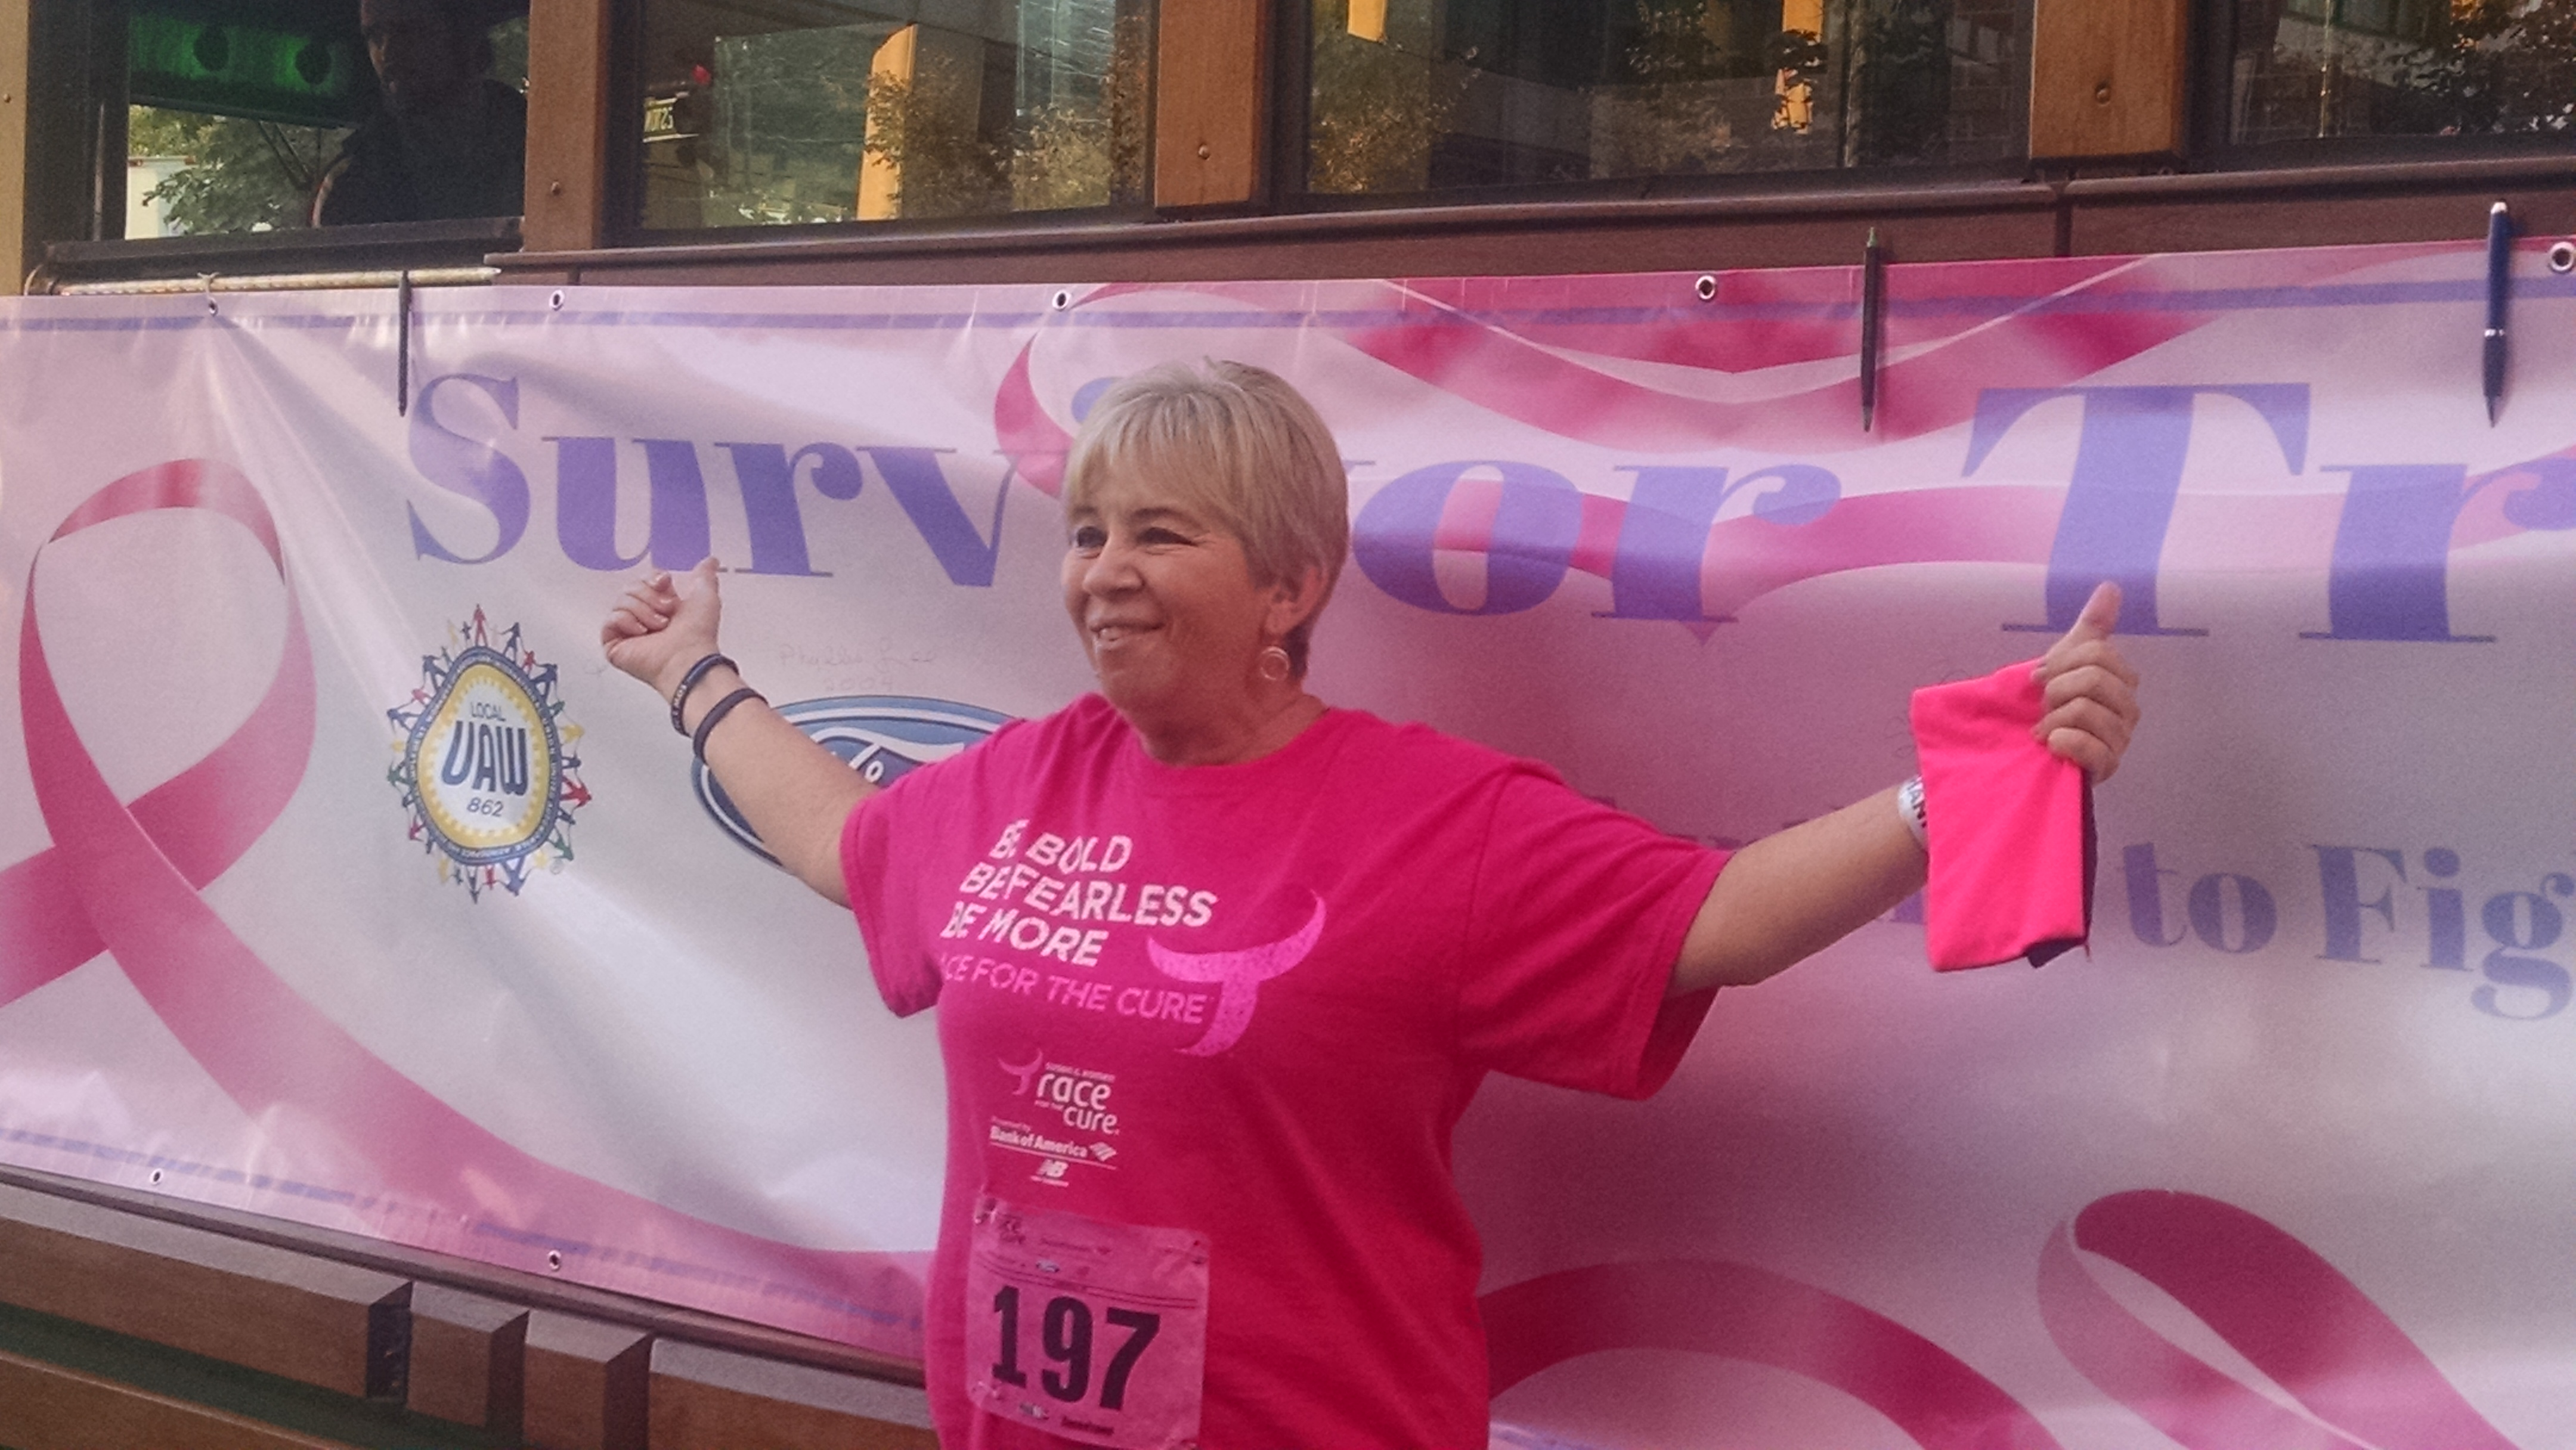 2017 Susan Komen Run pictures posted on Facebook